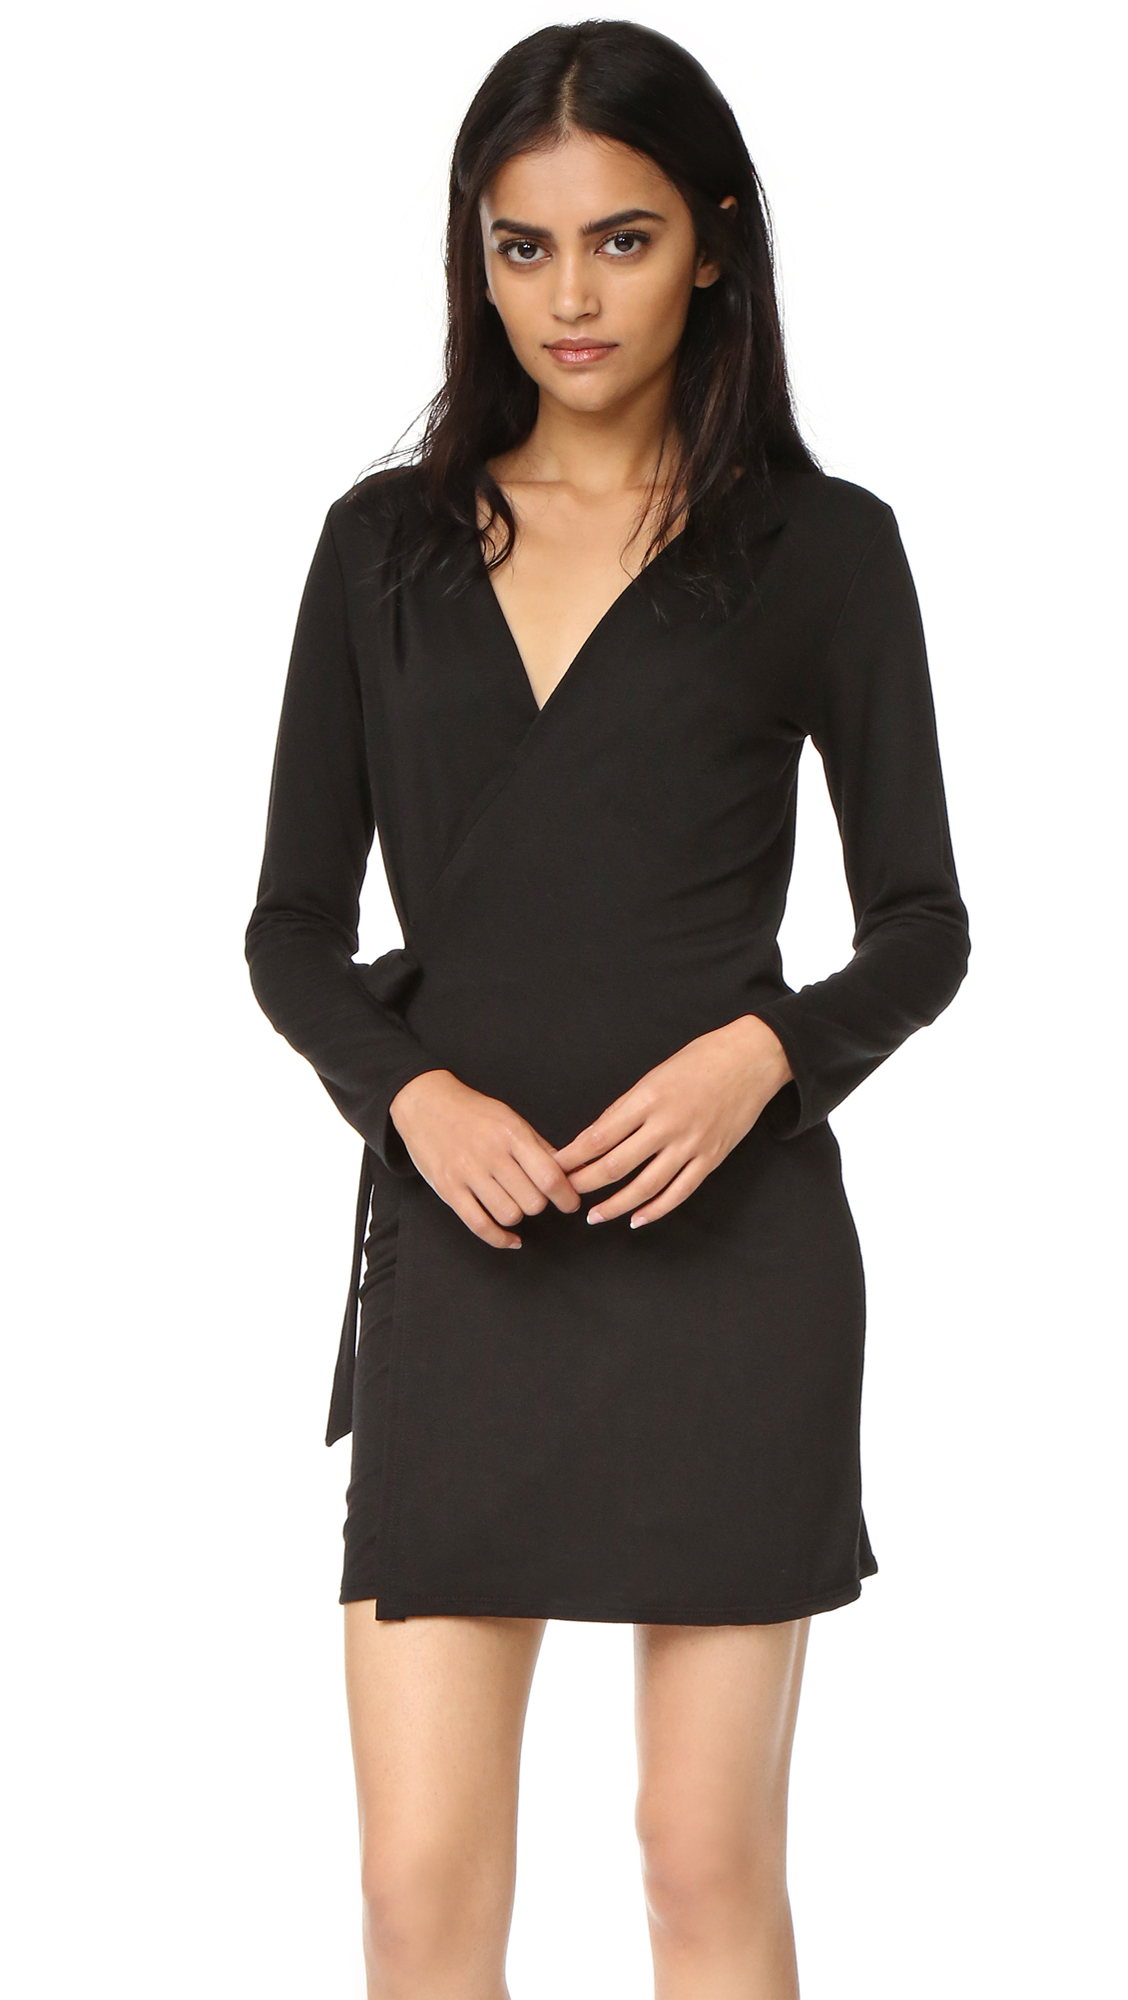 Lanston Wrap Mini Dress - Black